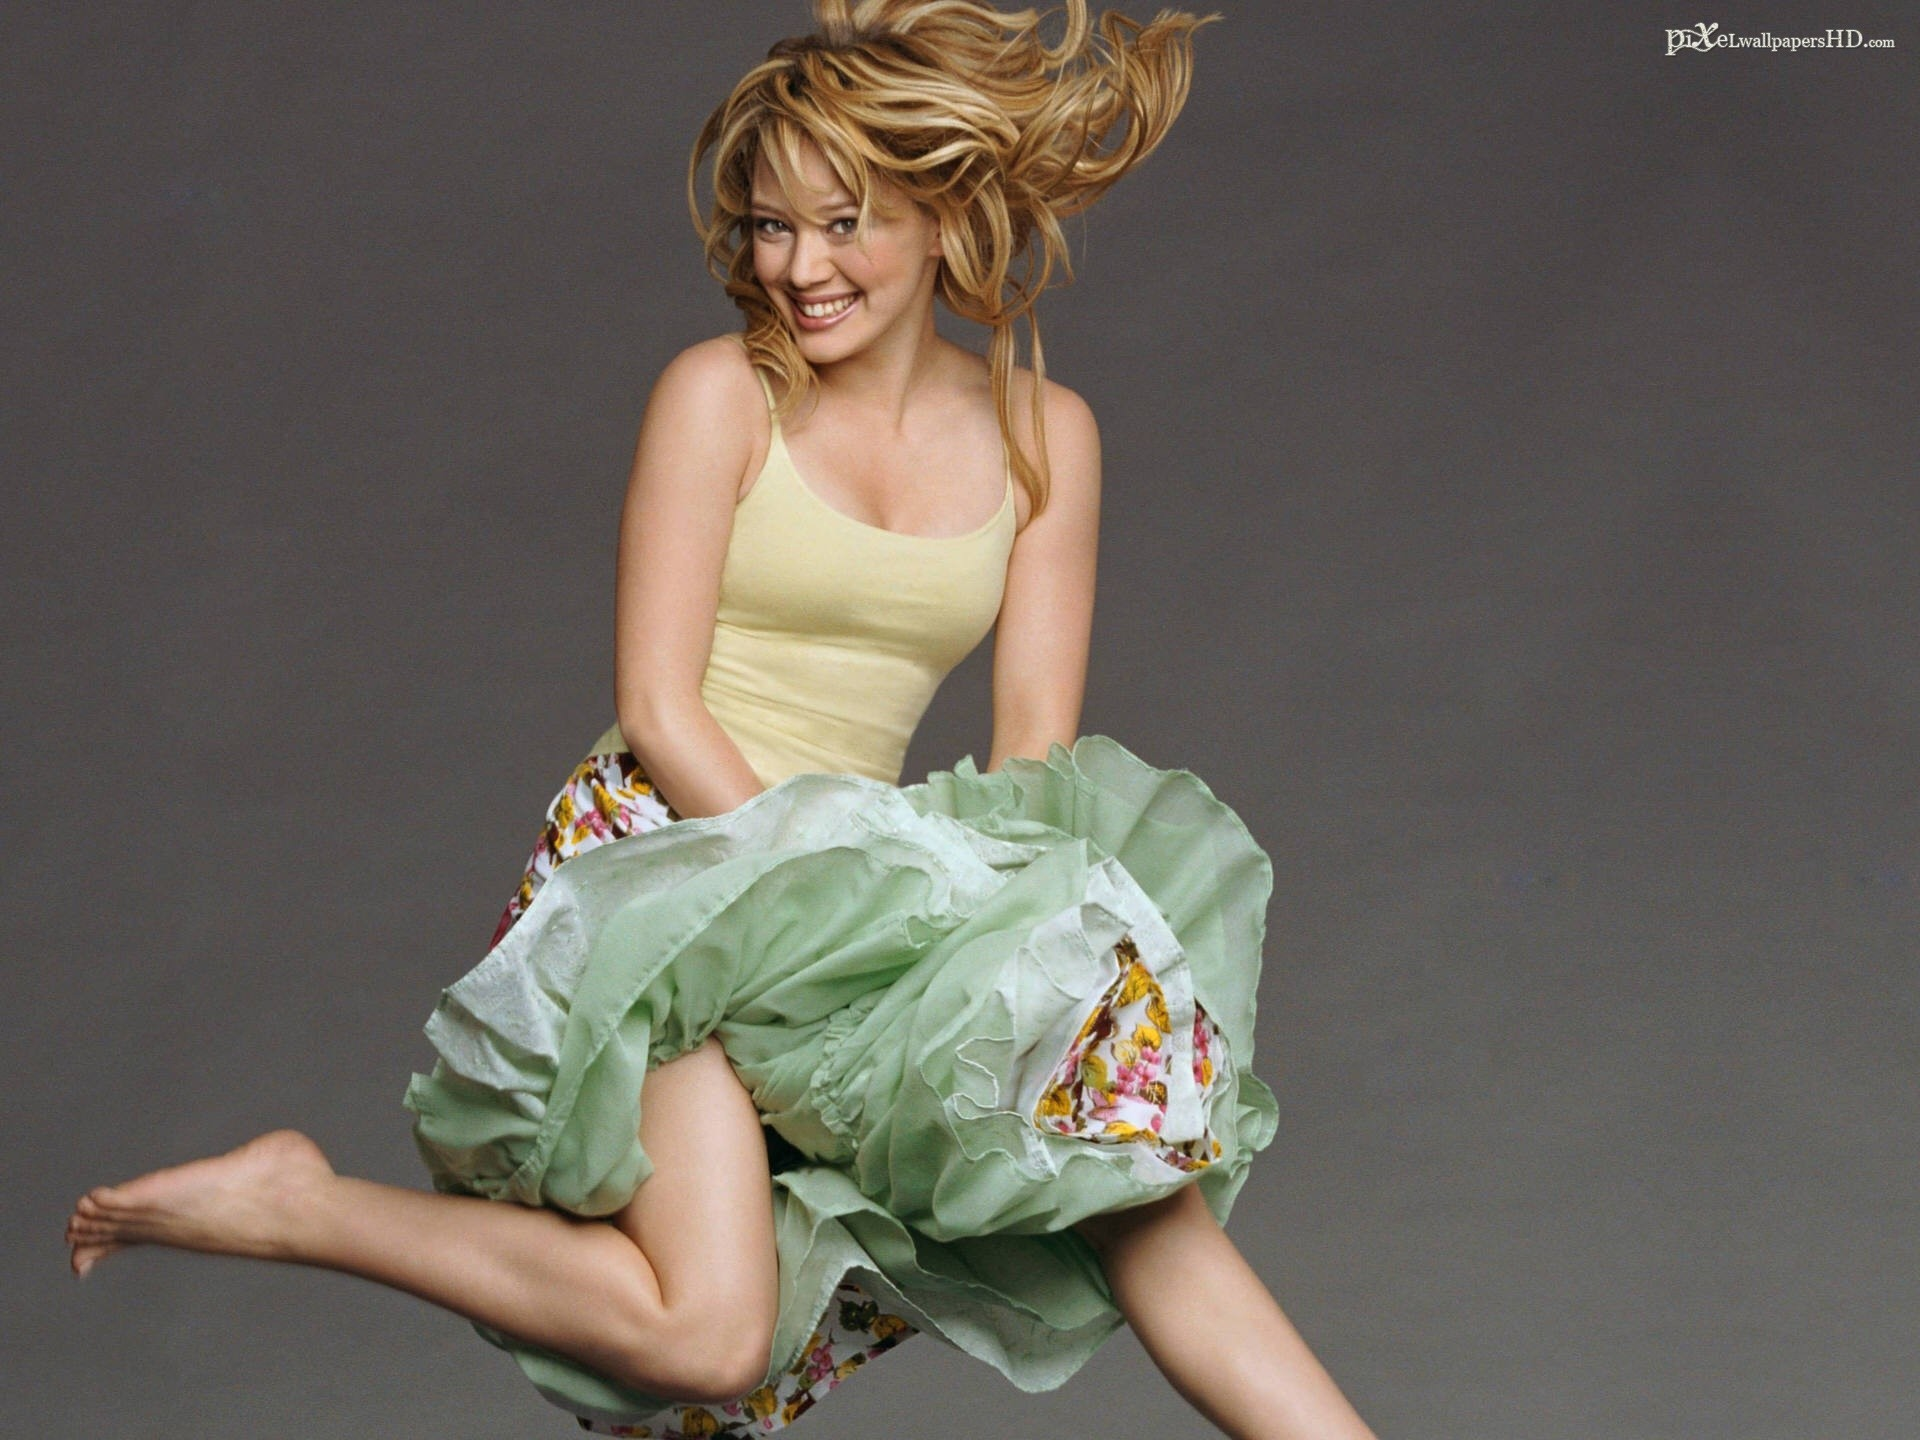 woman Hilary Duff HD Wallpaper